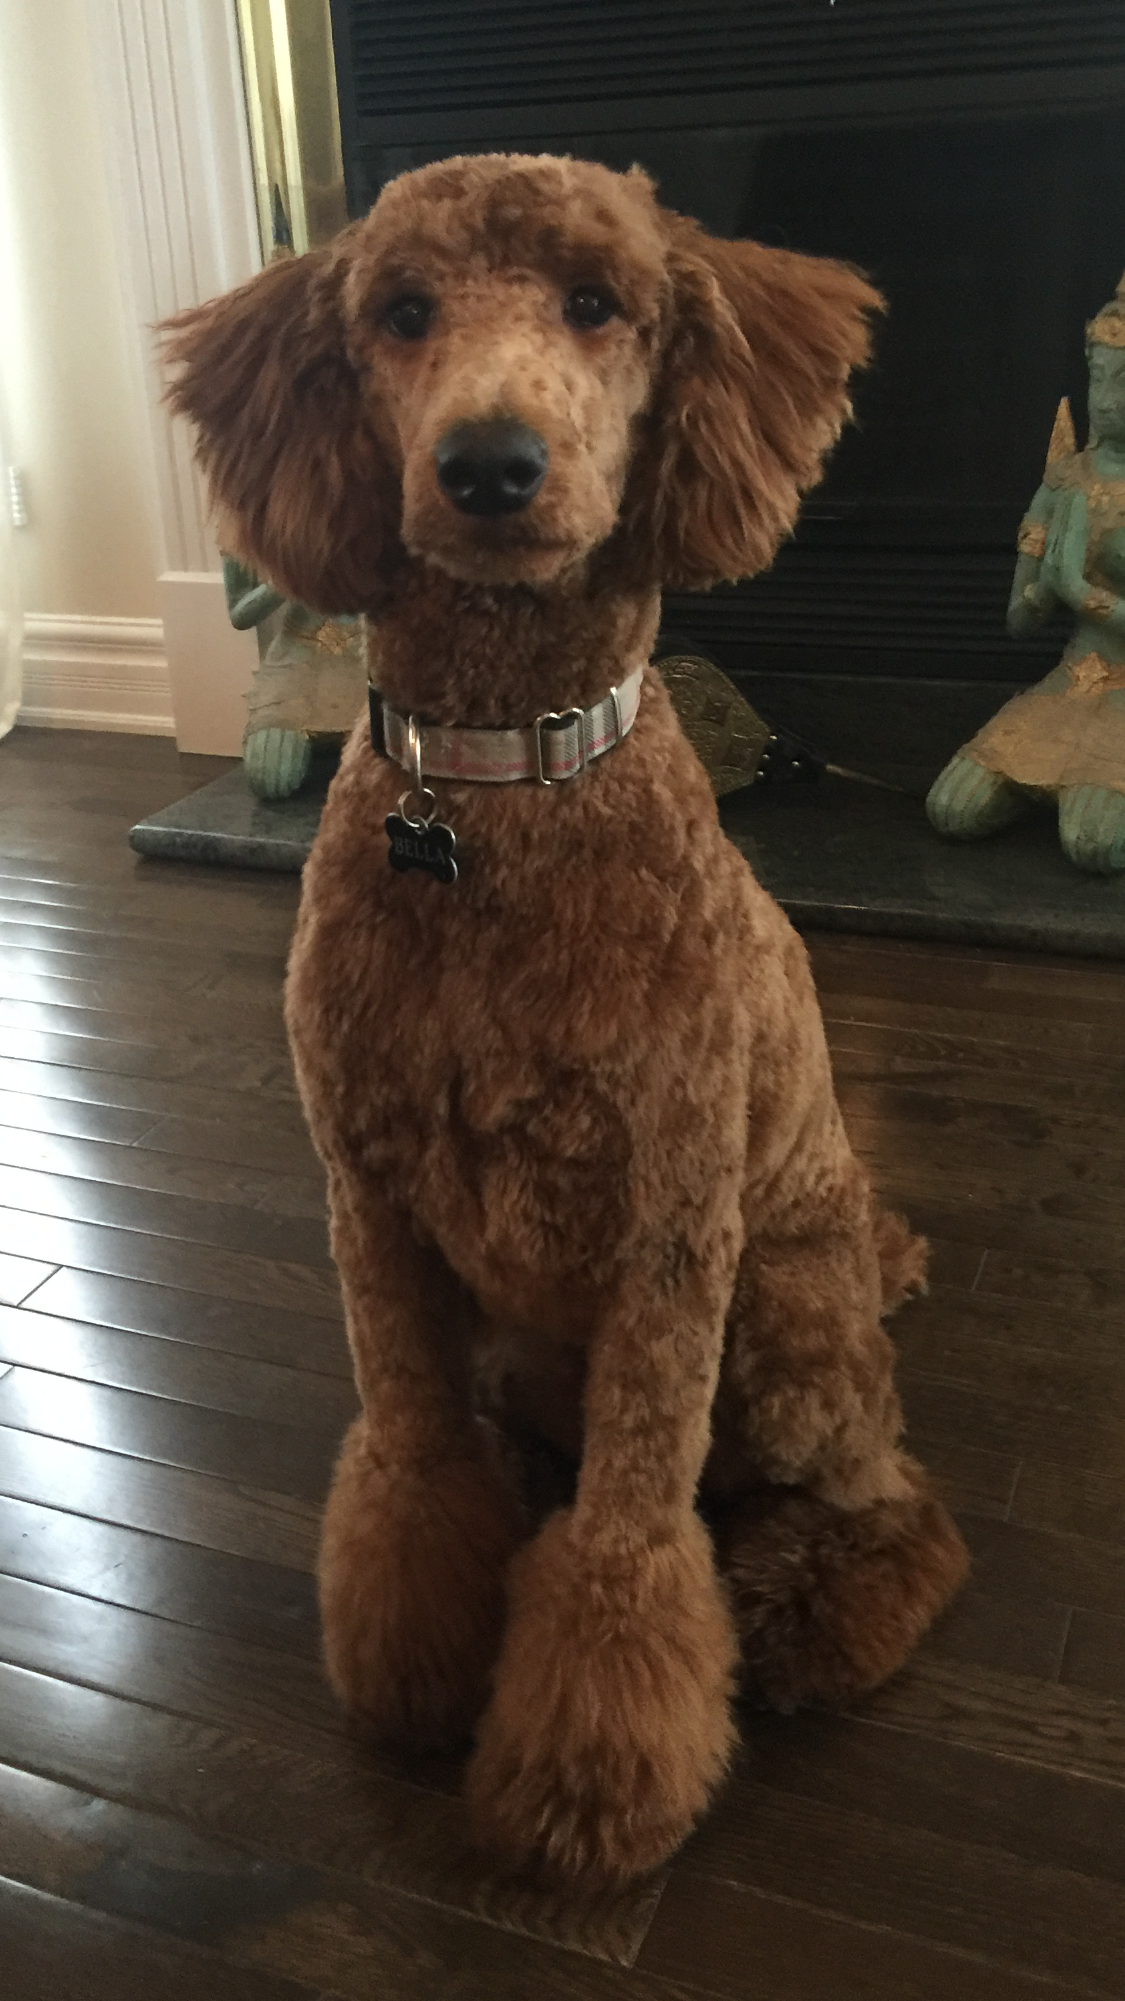 Poodle getting shaved pic